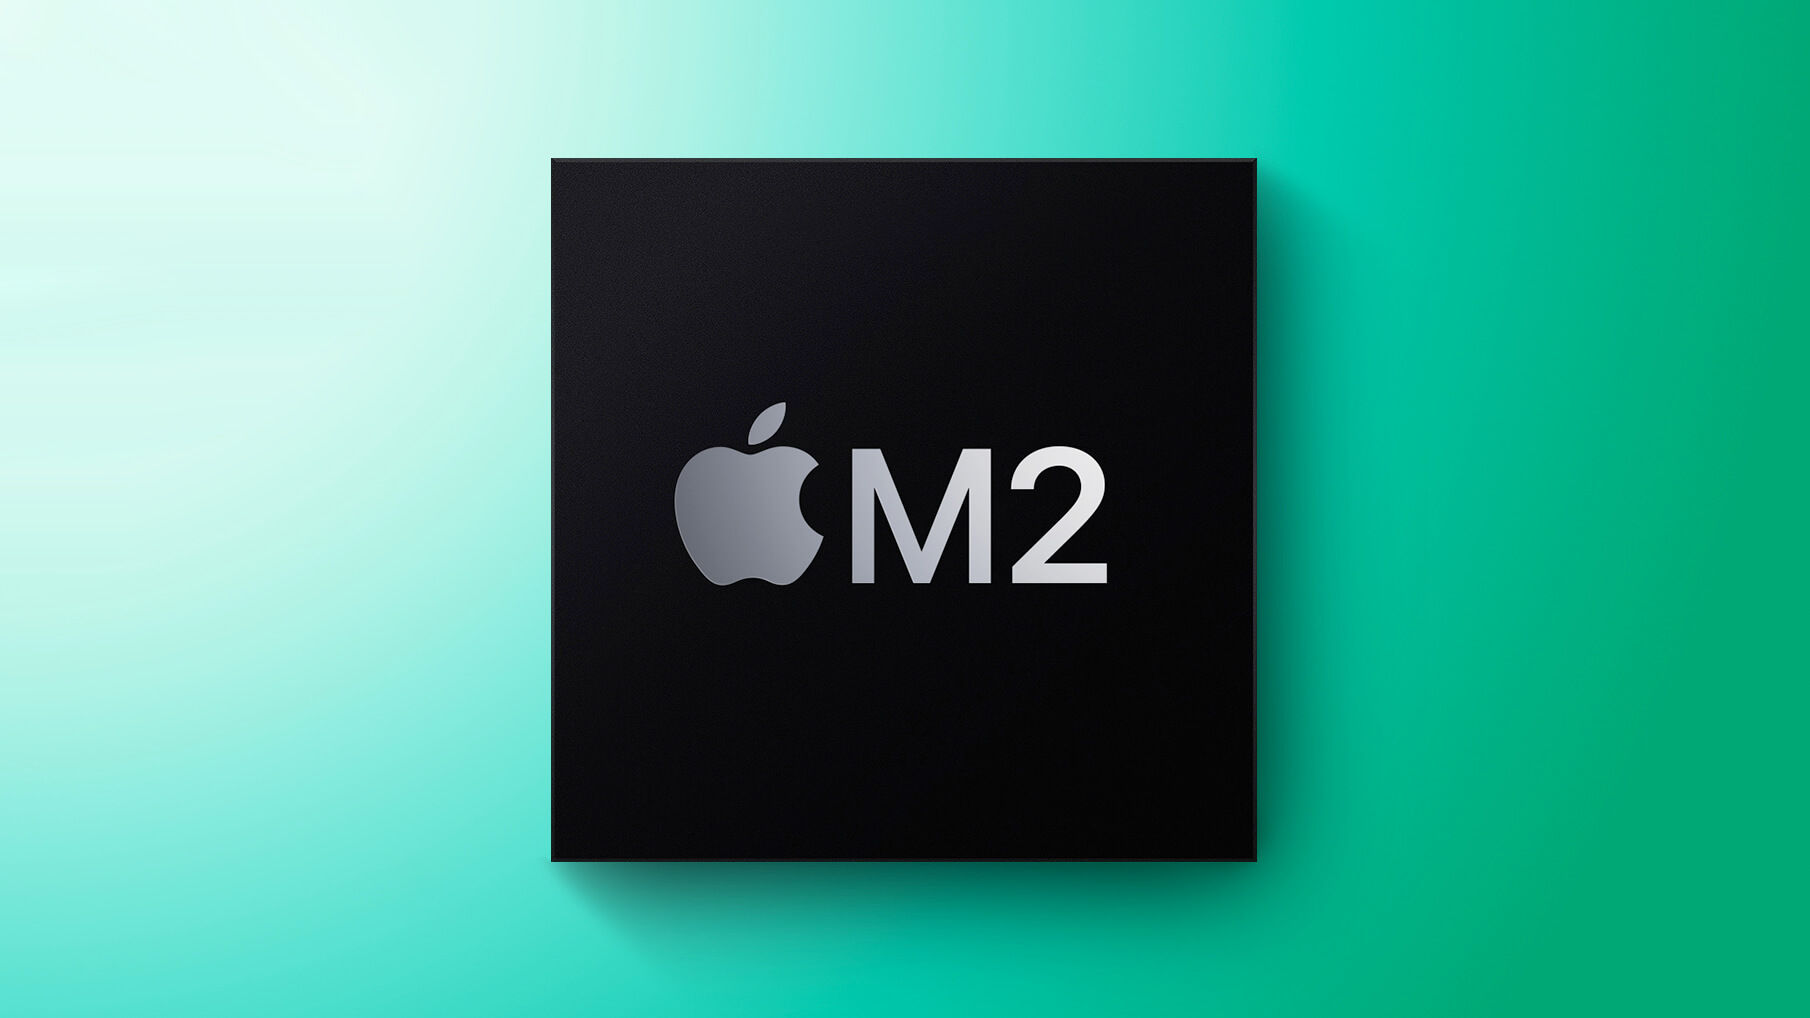 Процессор Apple M2 для новых MacBook уже в производстве